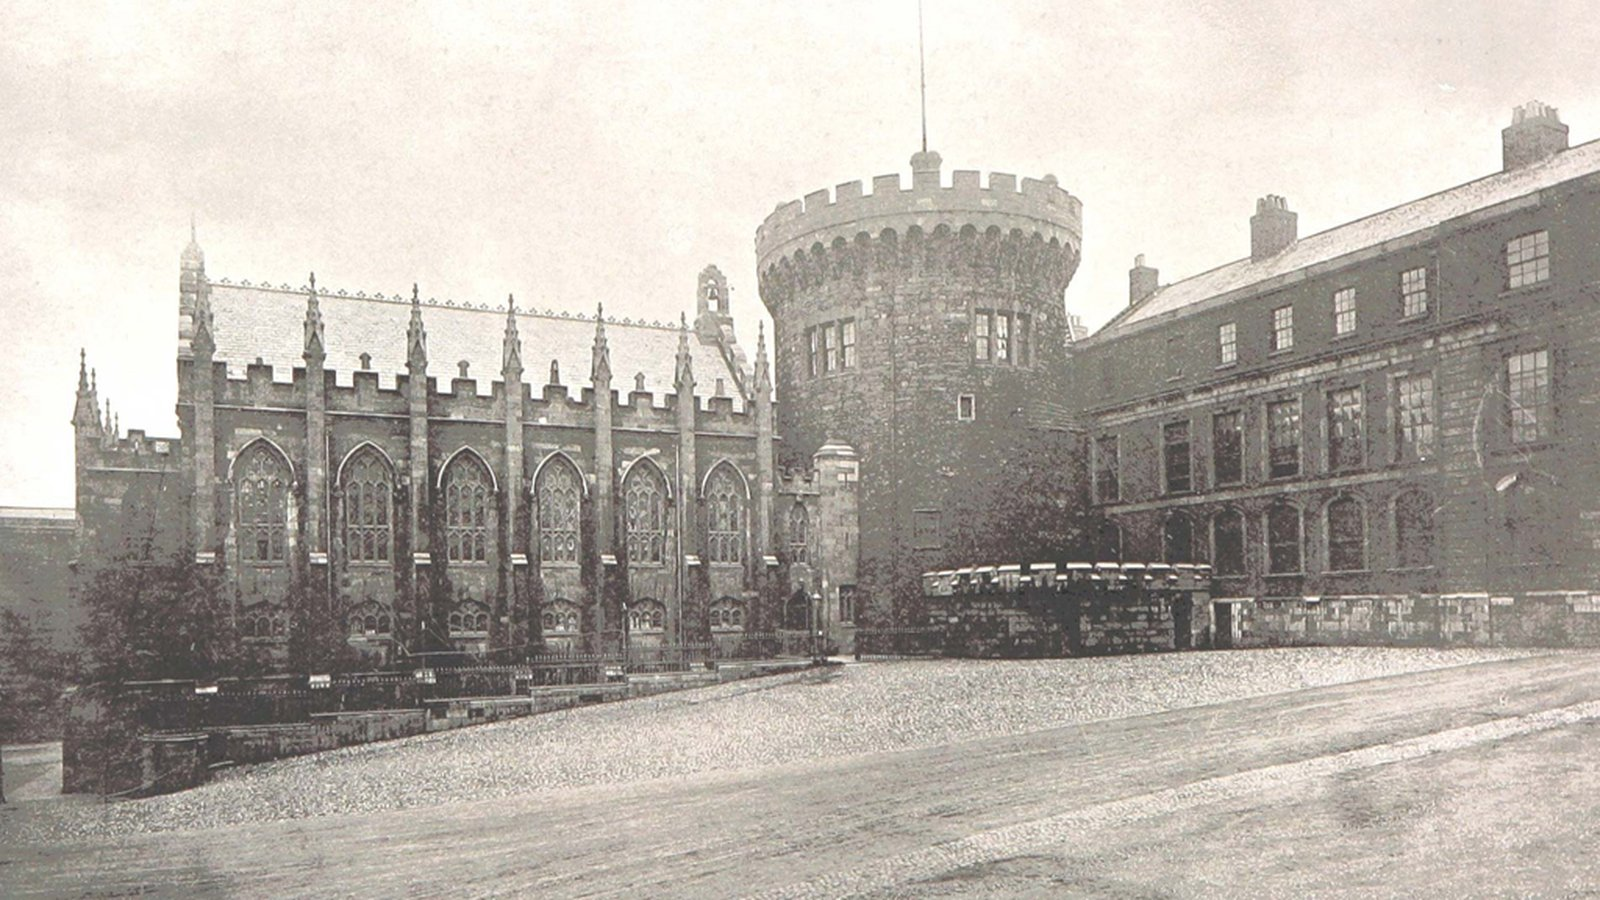 Image - Dublin Castle, the seat of British administrative powers - including censorship